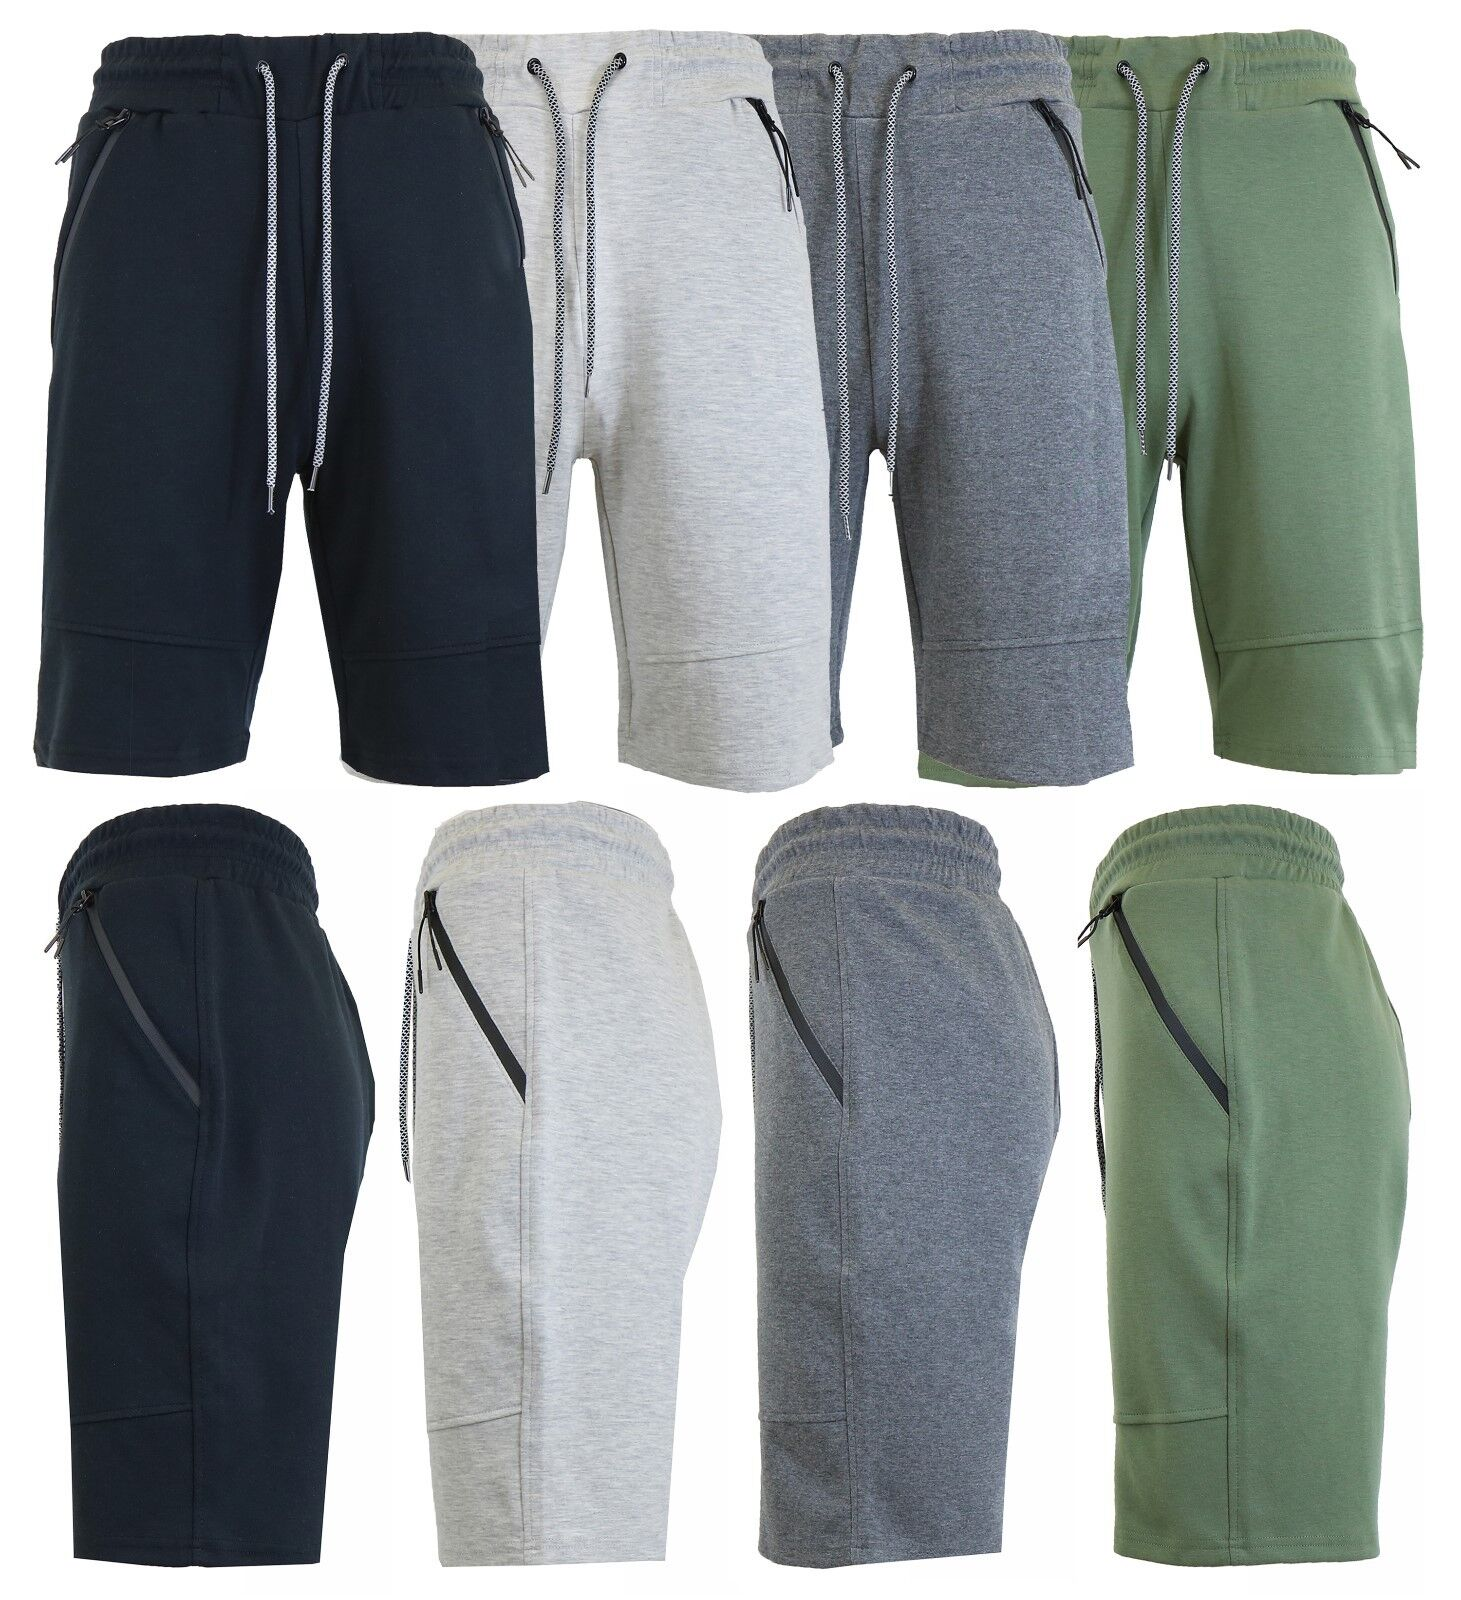 Mens Tech Fleece Shorts With Zipper Pockets Gym Lounge Sports Running Sweats NWT Clothing, Shoes & Accessories